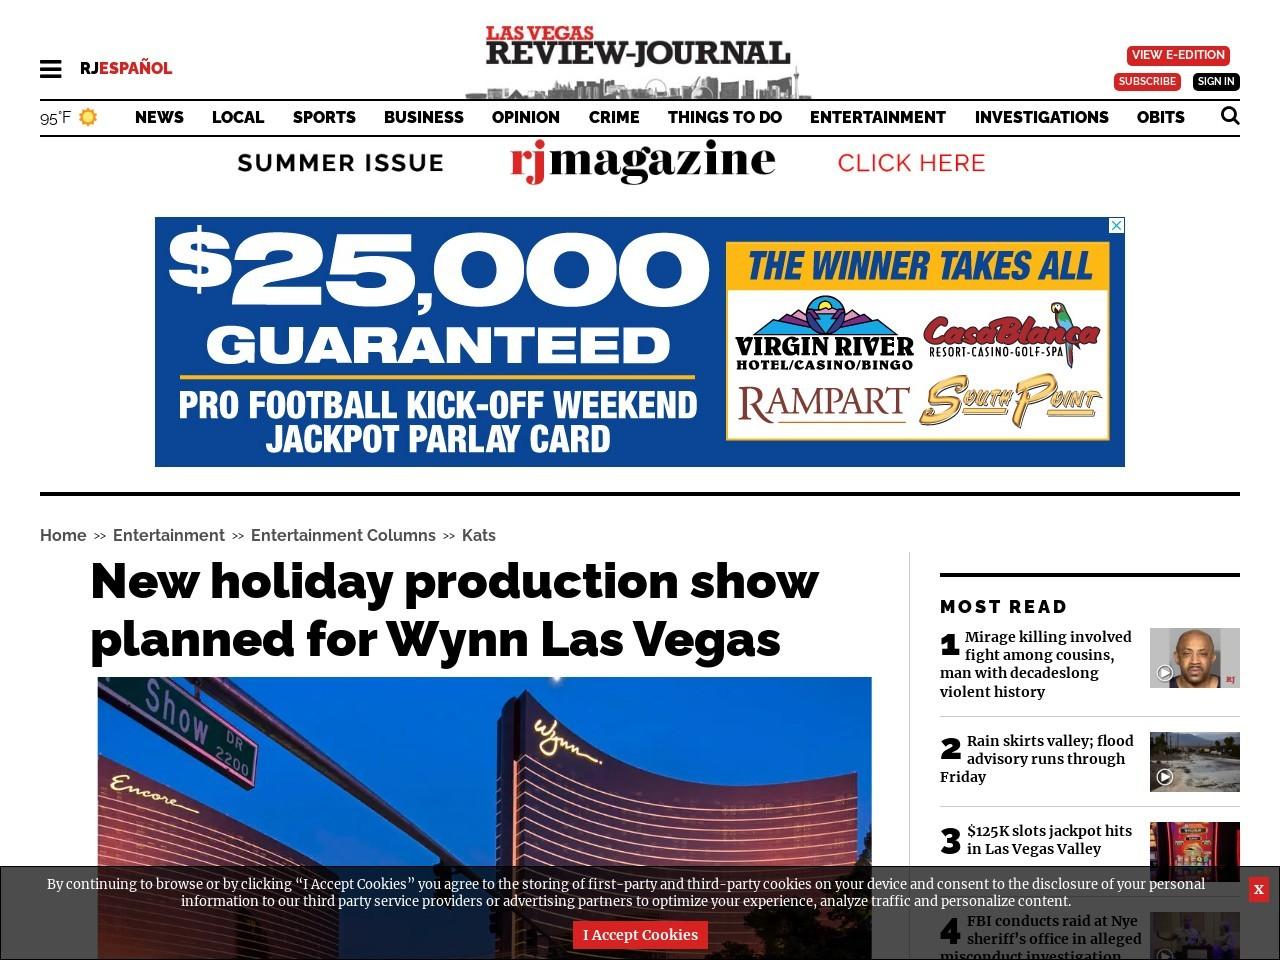 New holiday production show planned for Wynn Las Vegas